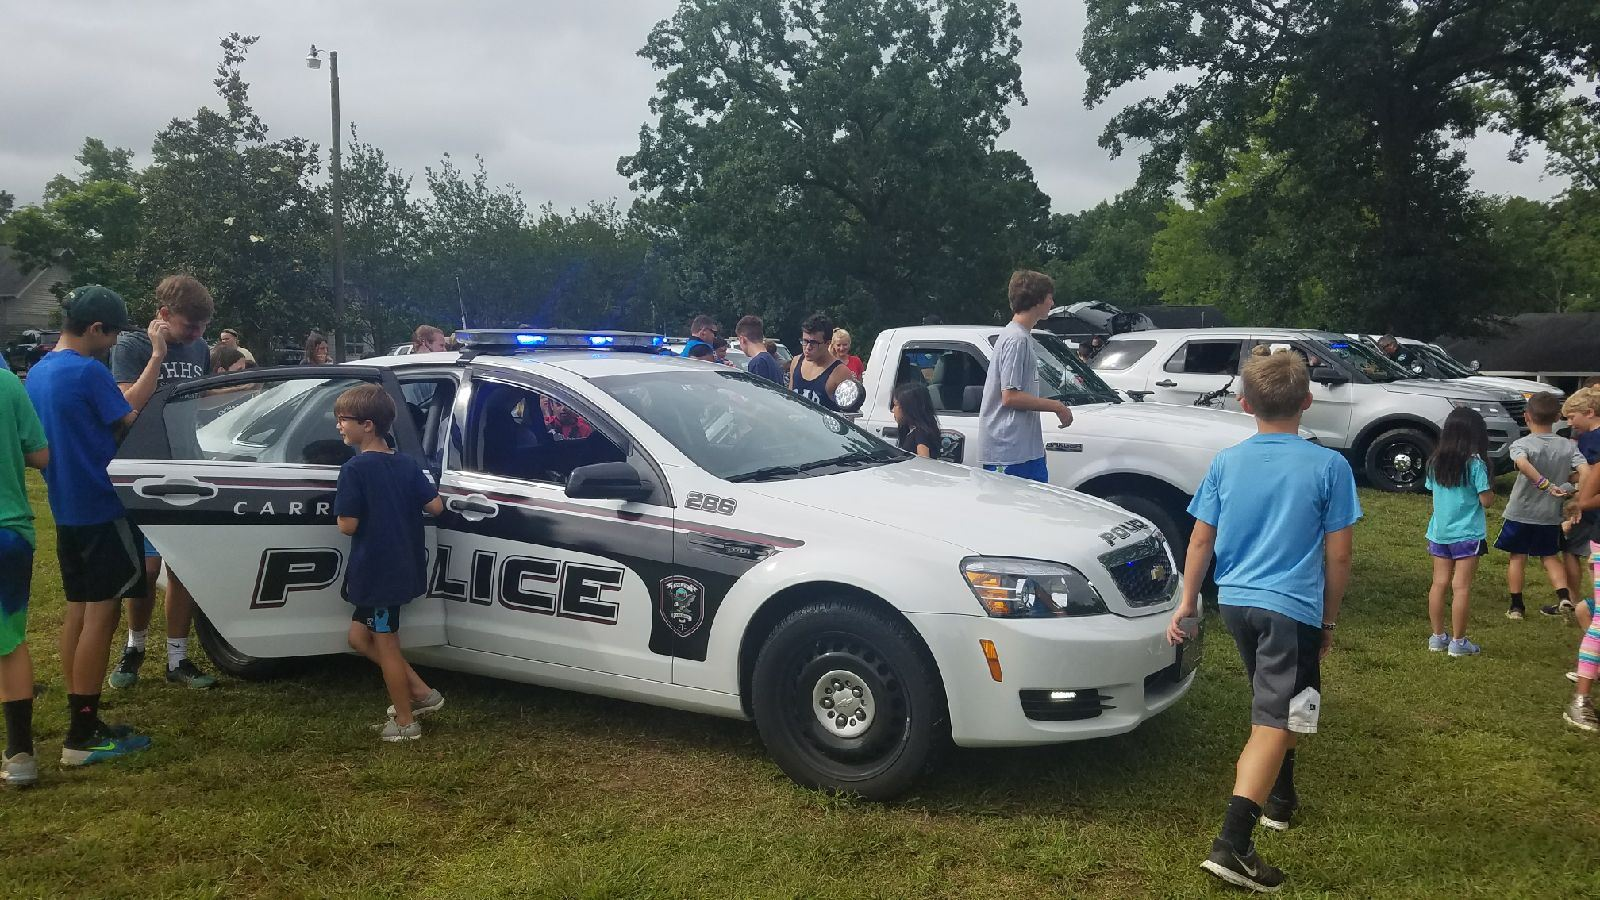 Police Department | Carrboro, NC - Official Website